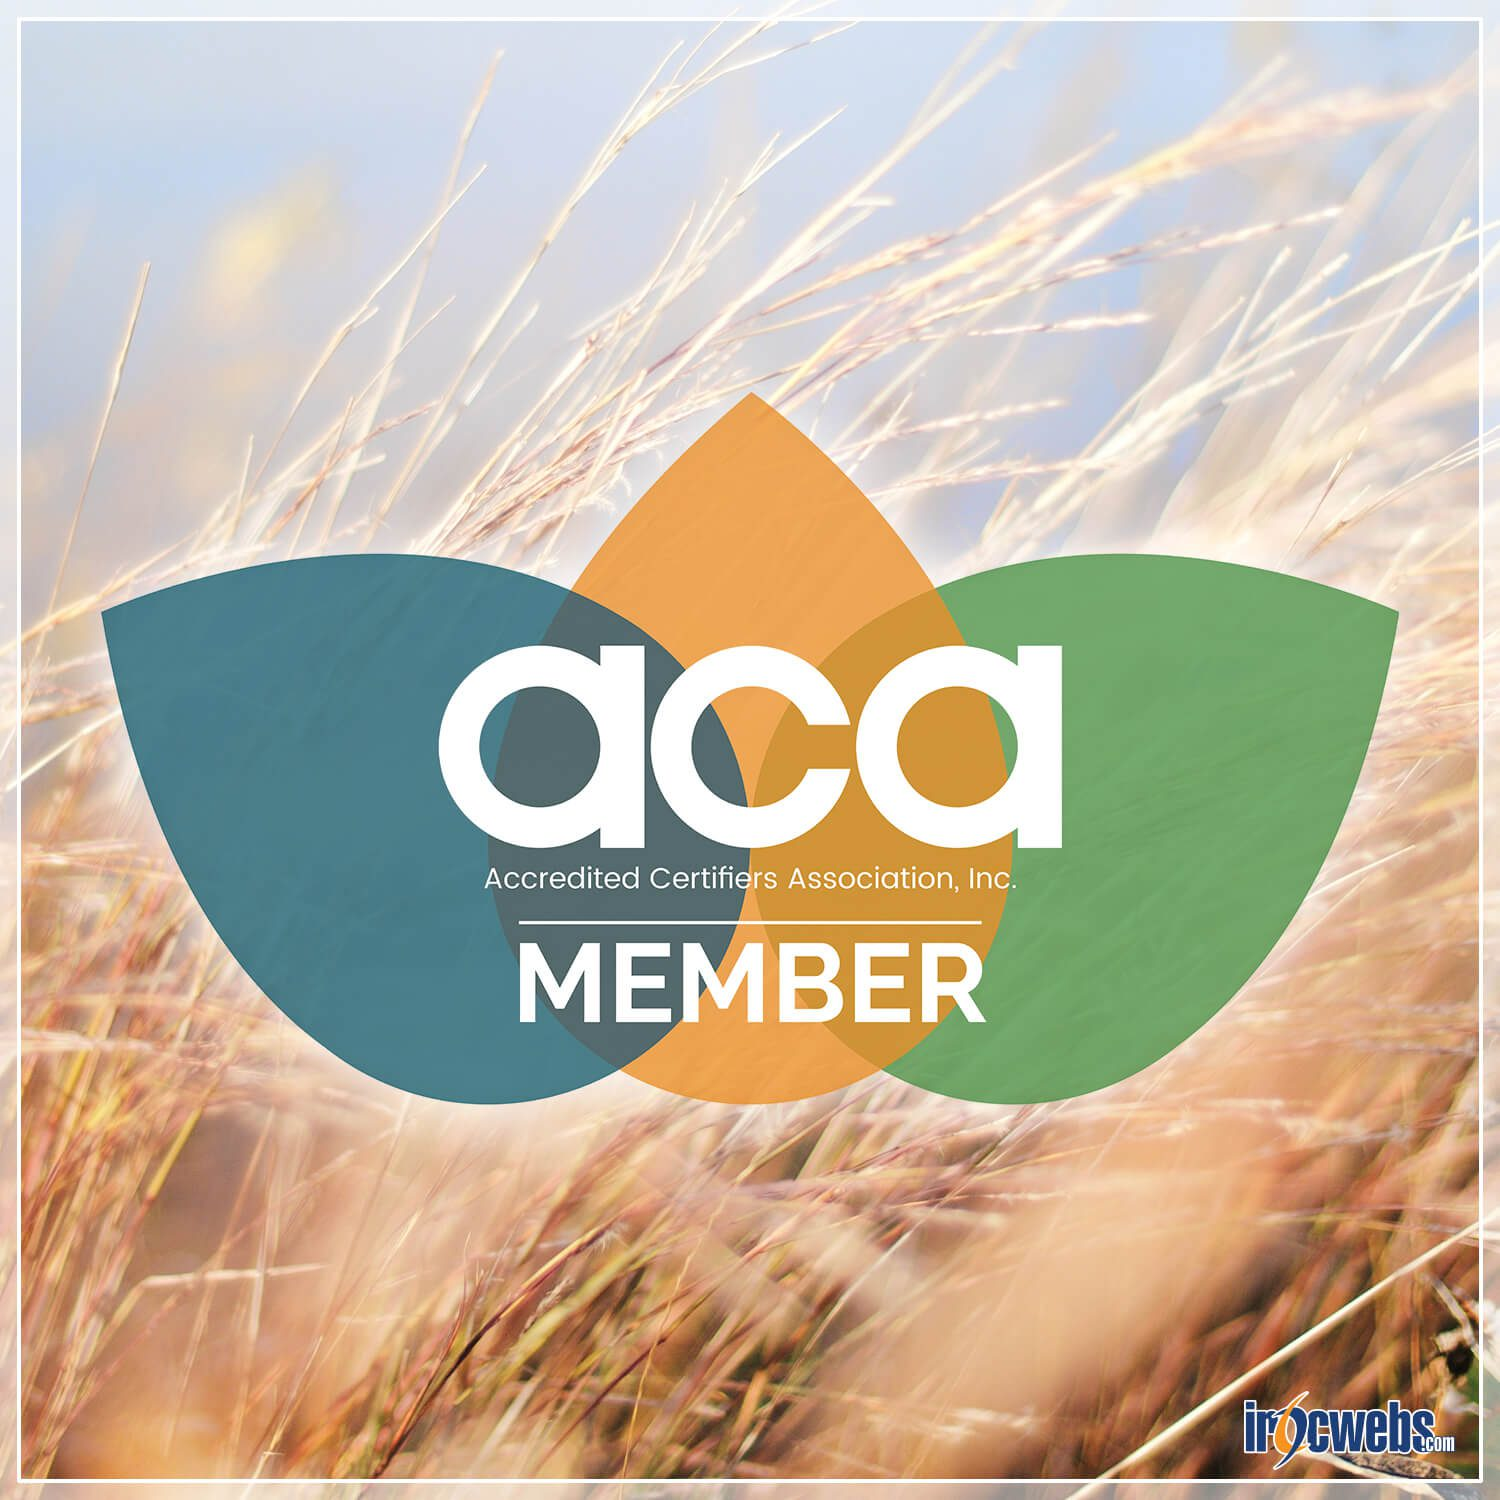 Accredited Certifiers Association's Membership Logo with Iowa Background